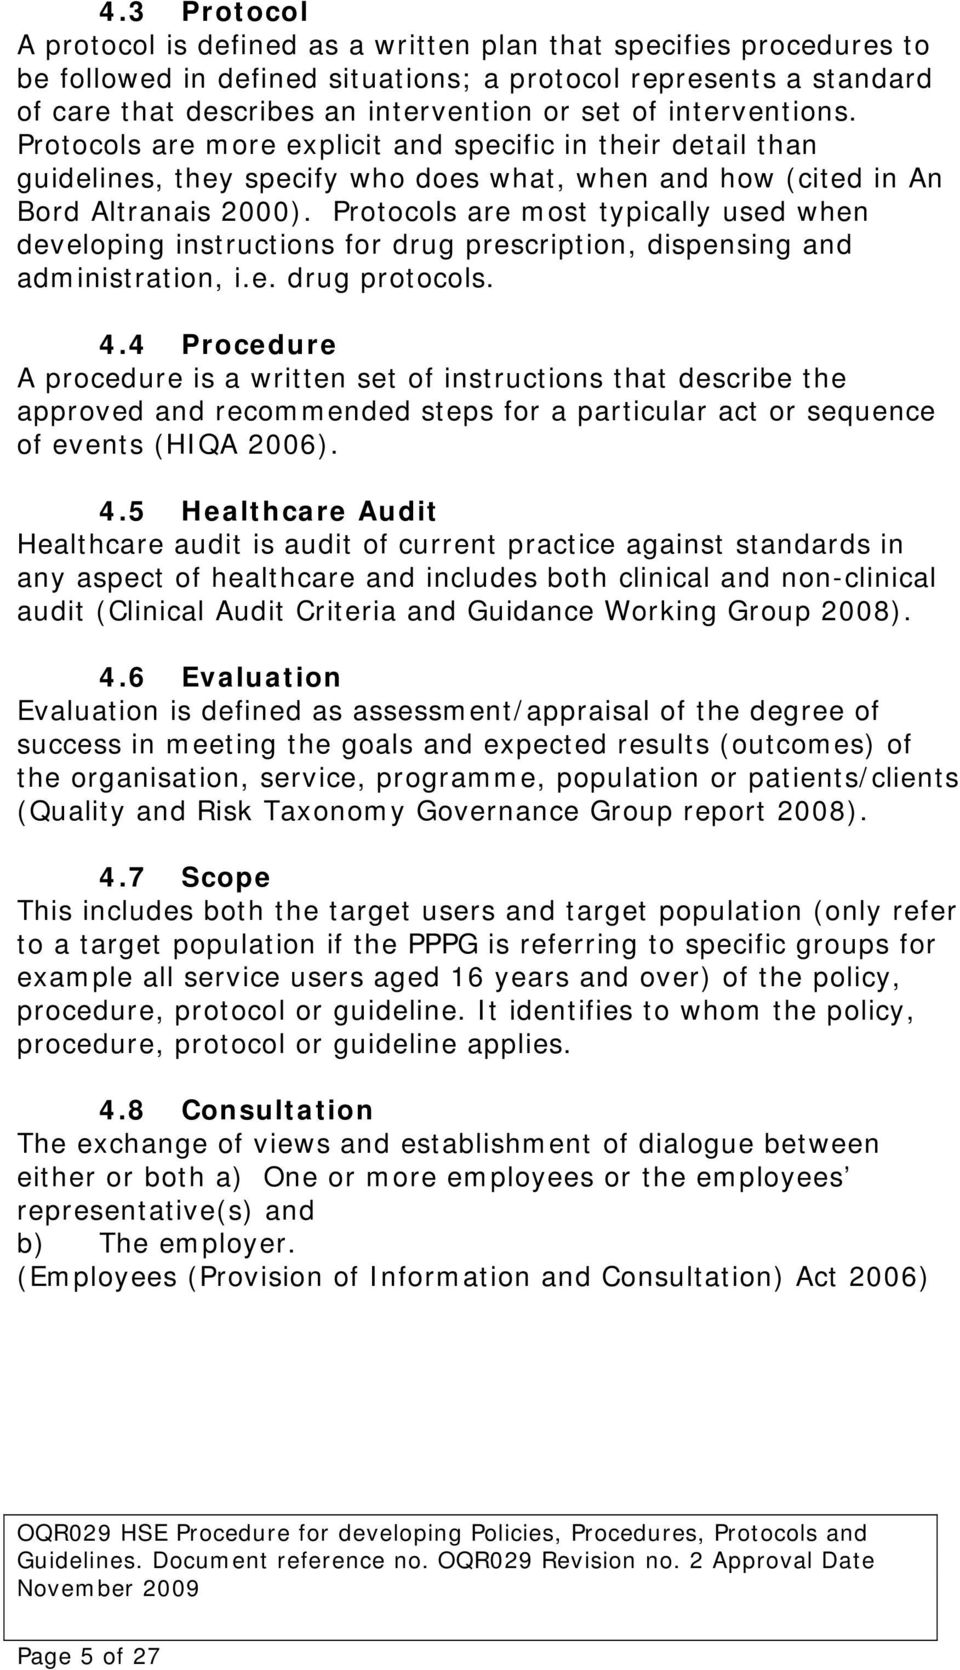 HSE Procedure for developing  Policies, Procedures, Protocols and